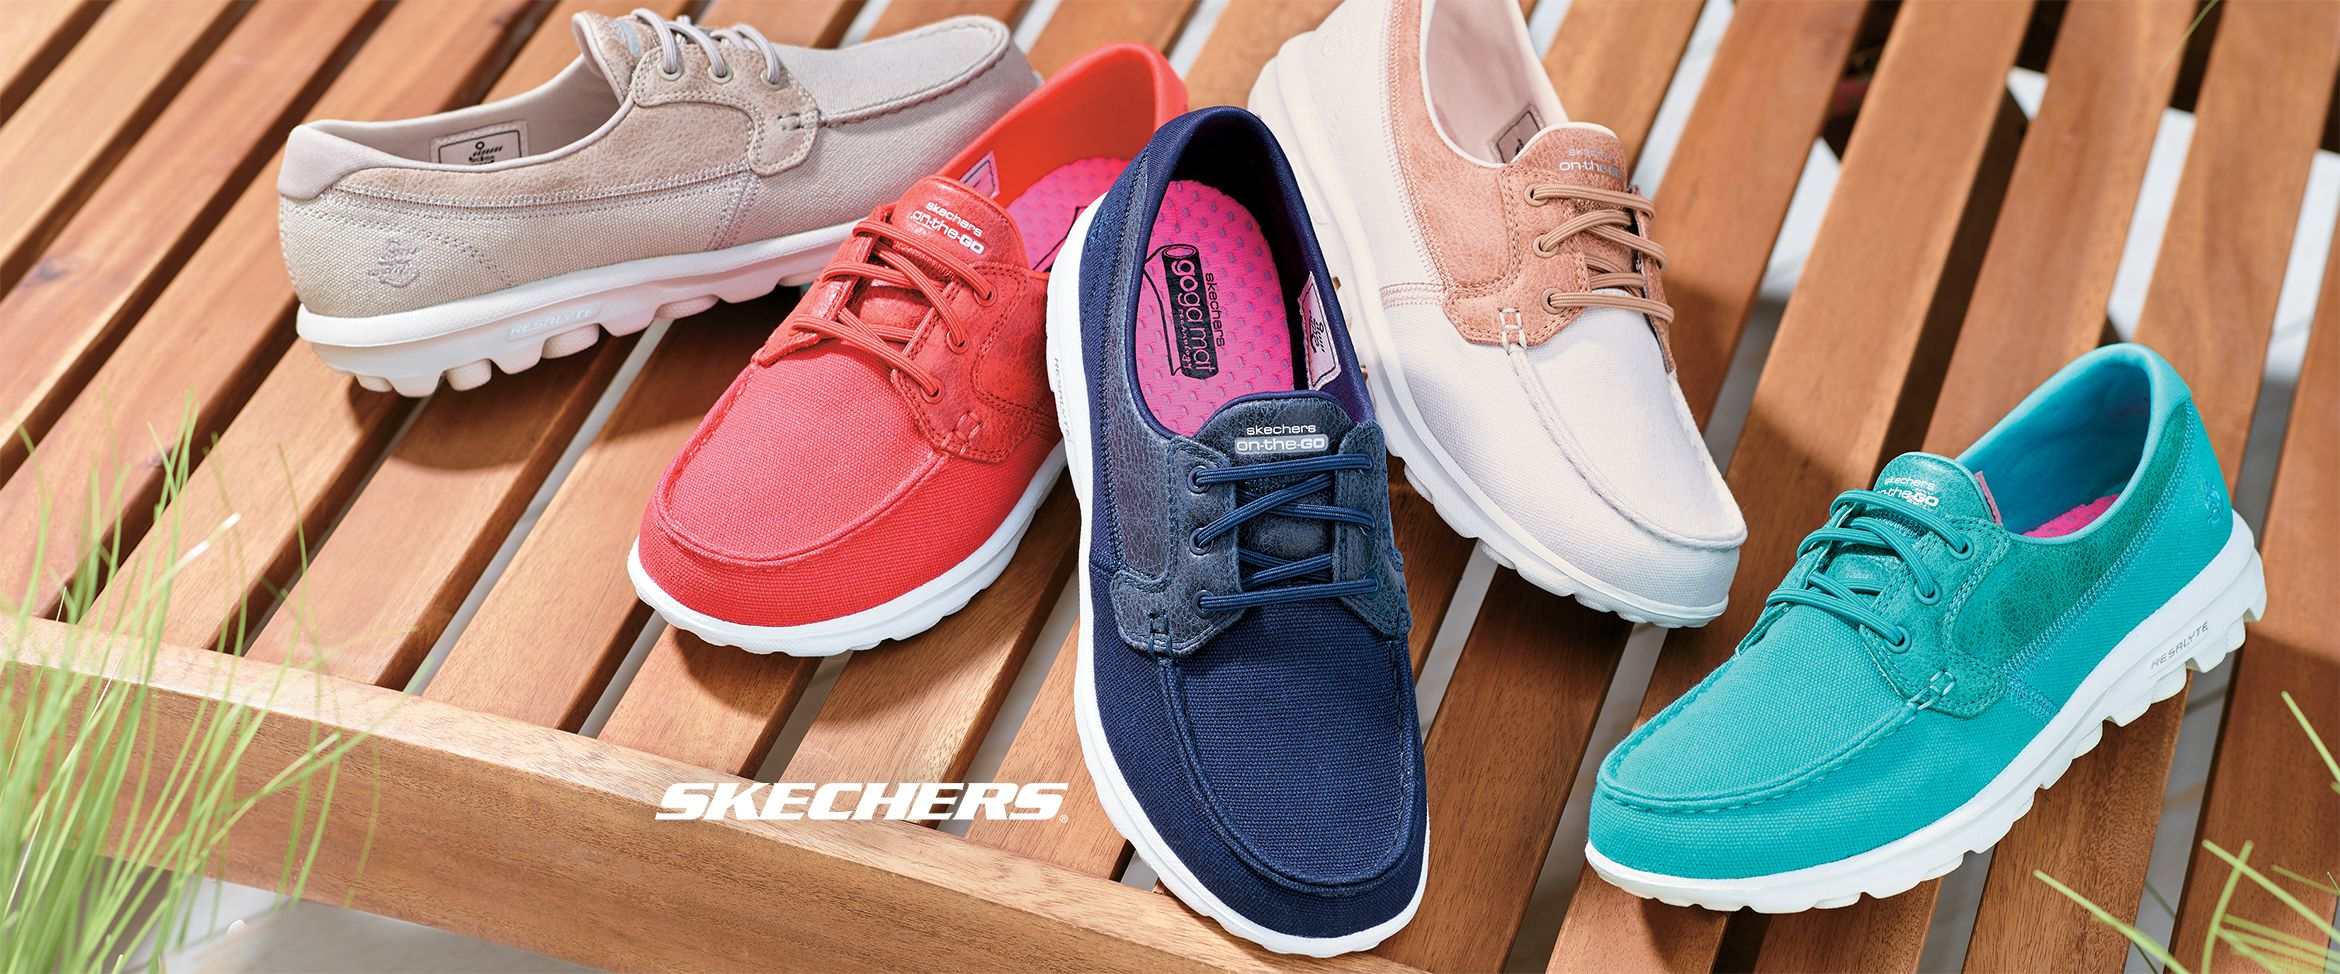 Skechers On-the-GO Boat Shoes with Goga Mat - Seaside